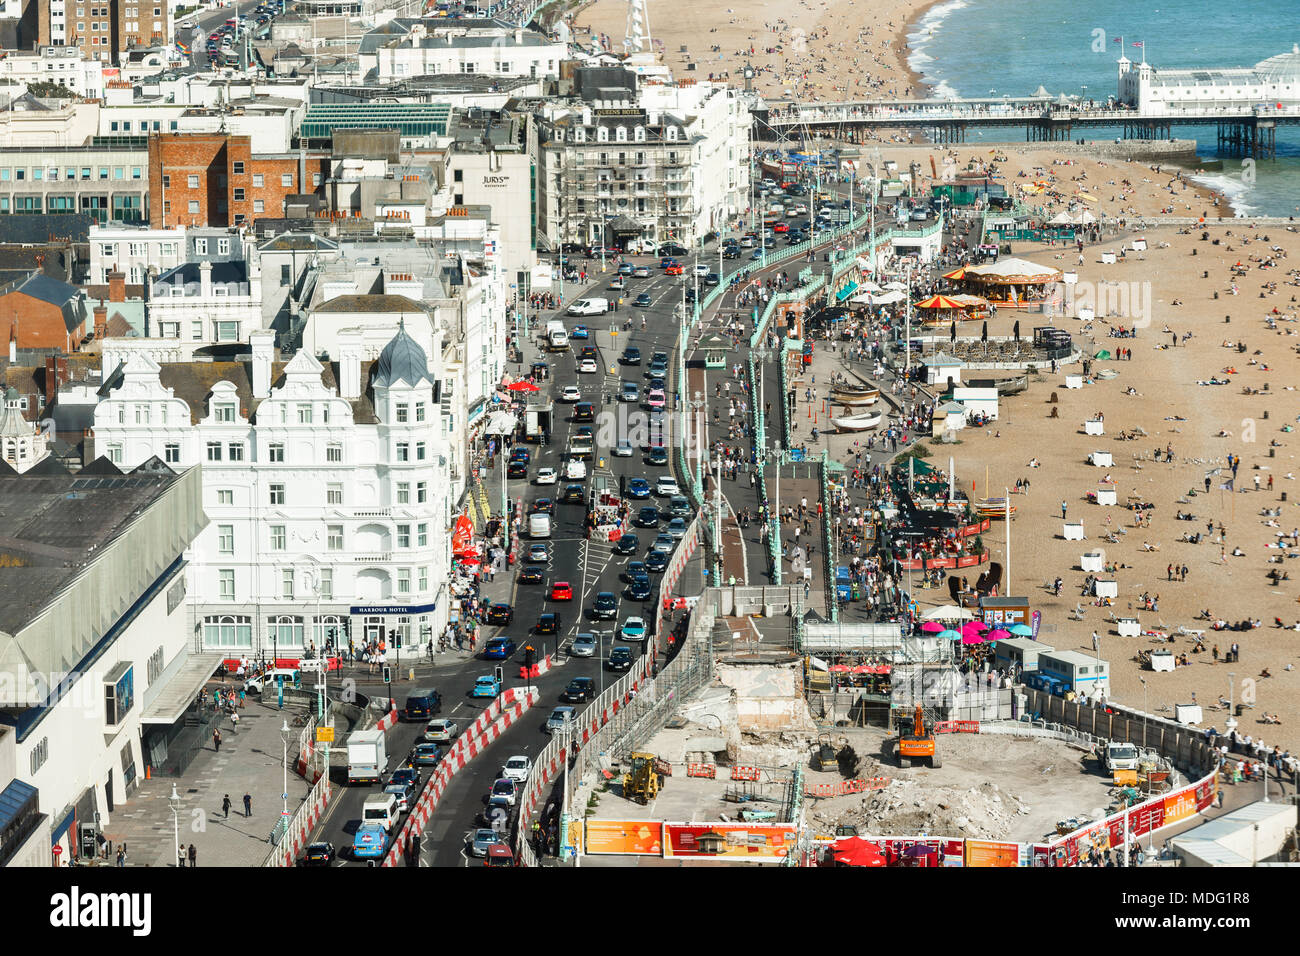 Aerial view of Brighton, roadway is made narrower due to built work - Stock Image